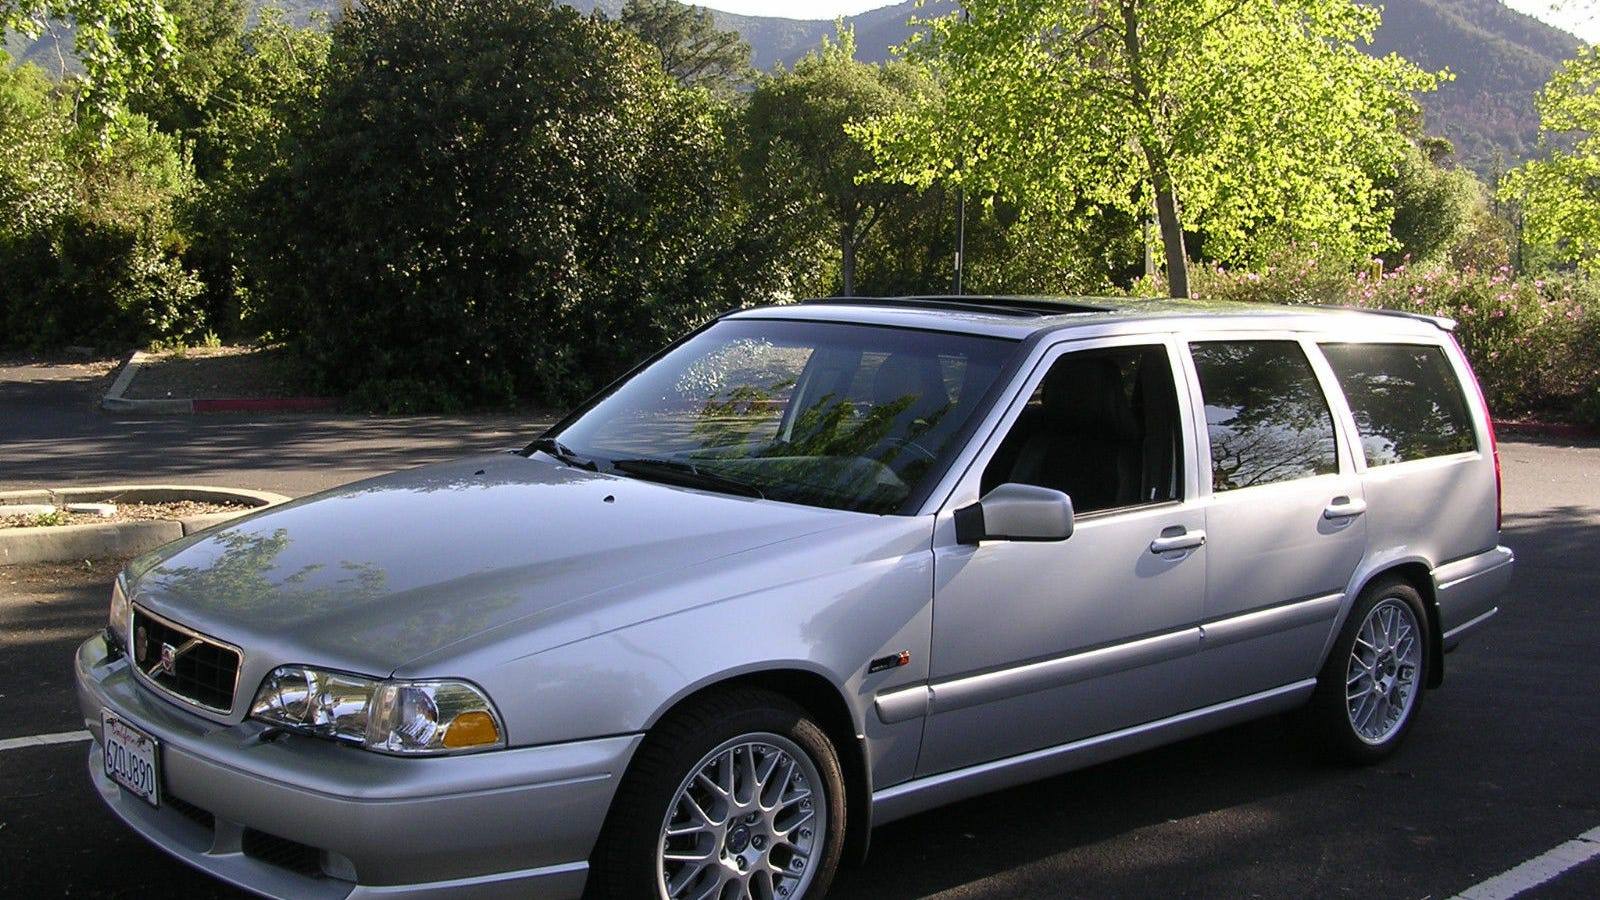 West Chester Pa Craigslist Cars